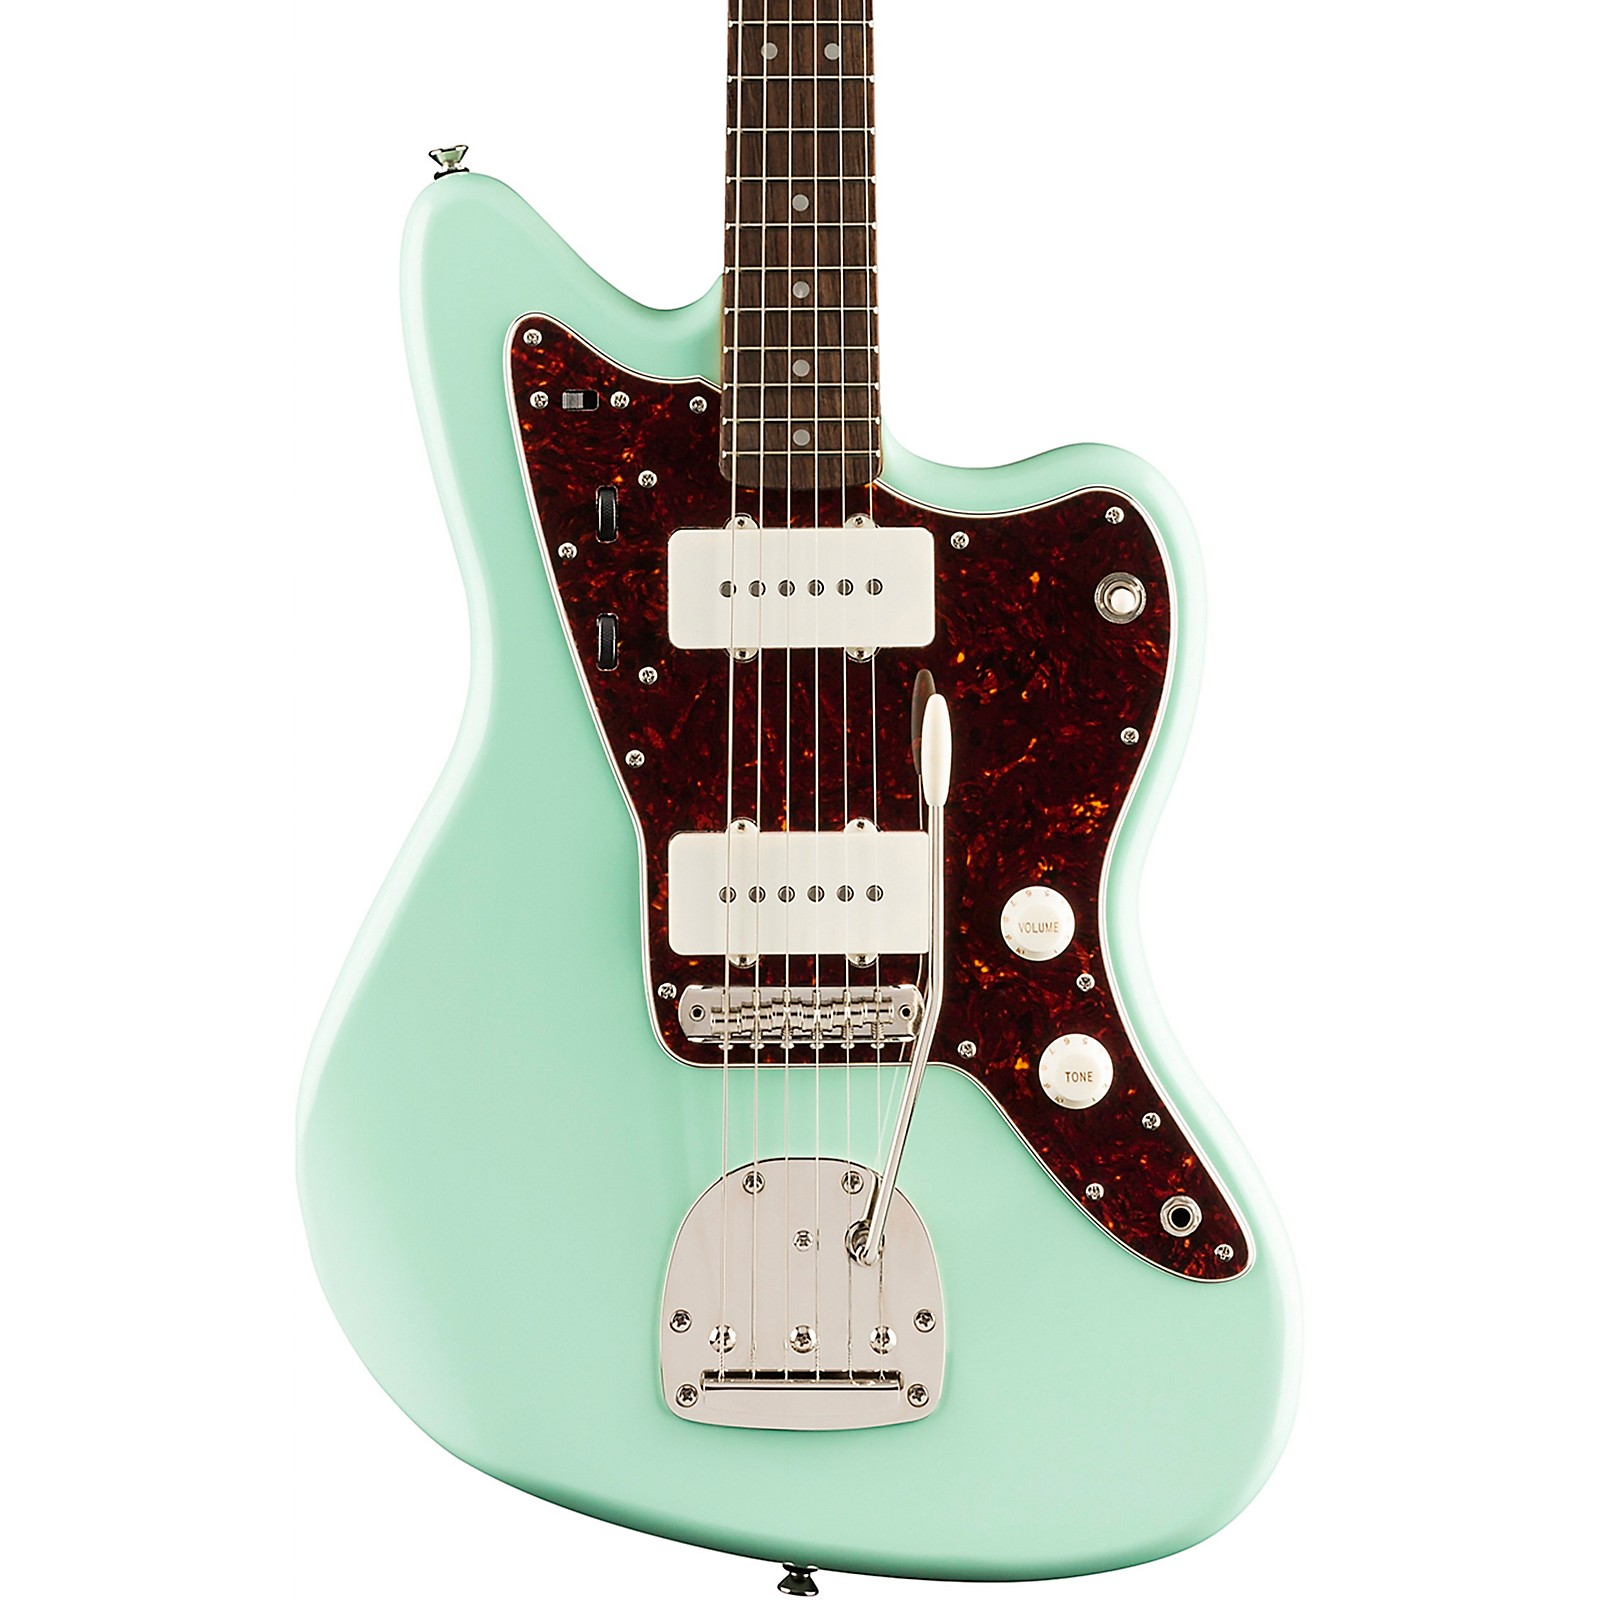 Squier Classic Vibe '60s Jazzmaster Limited Edition Electric Guitar